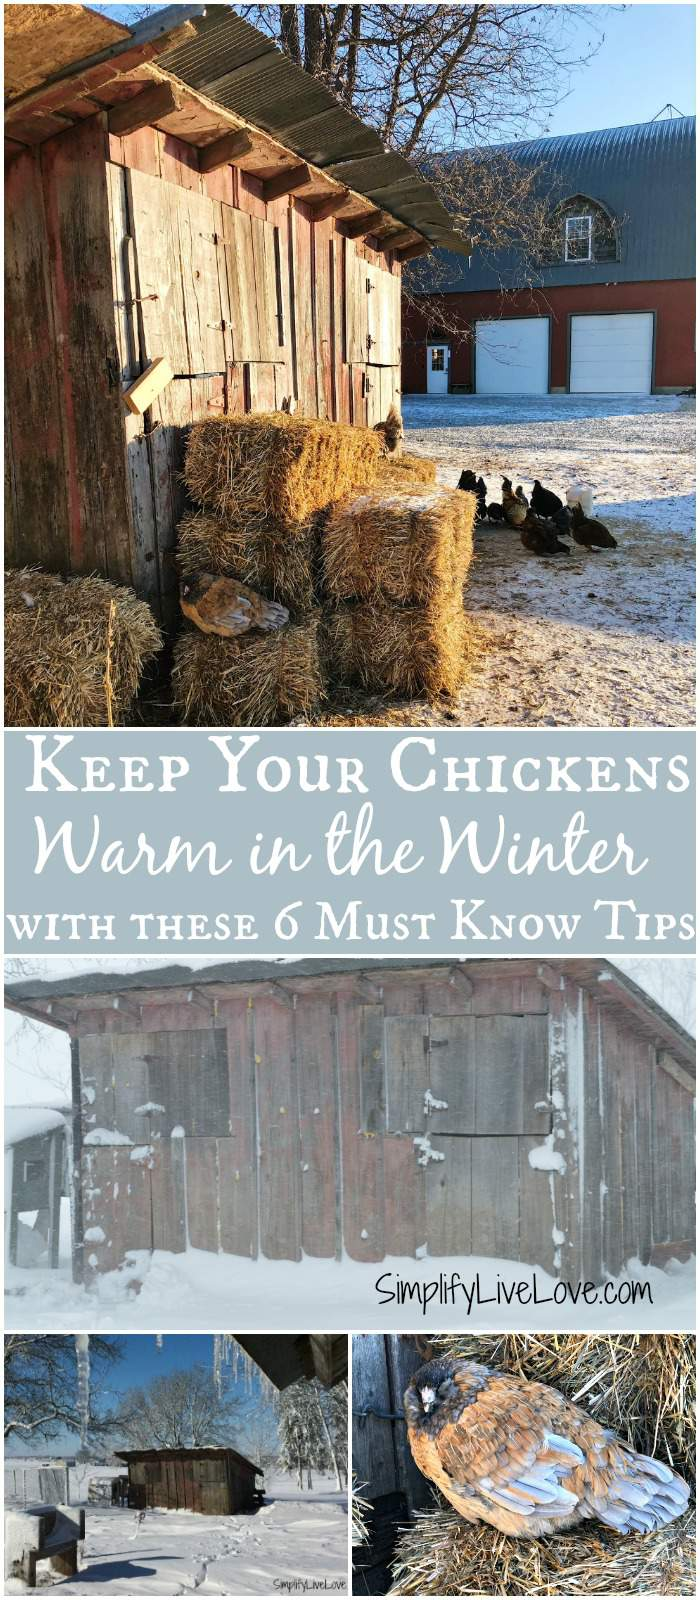 Wondering how to keep chickens warm in winter without electricity? These easy tips on keeping chickens warm in winter are a must read. Quick and easy changes to the winter chicken coop are helpful with or without electricity.